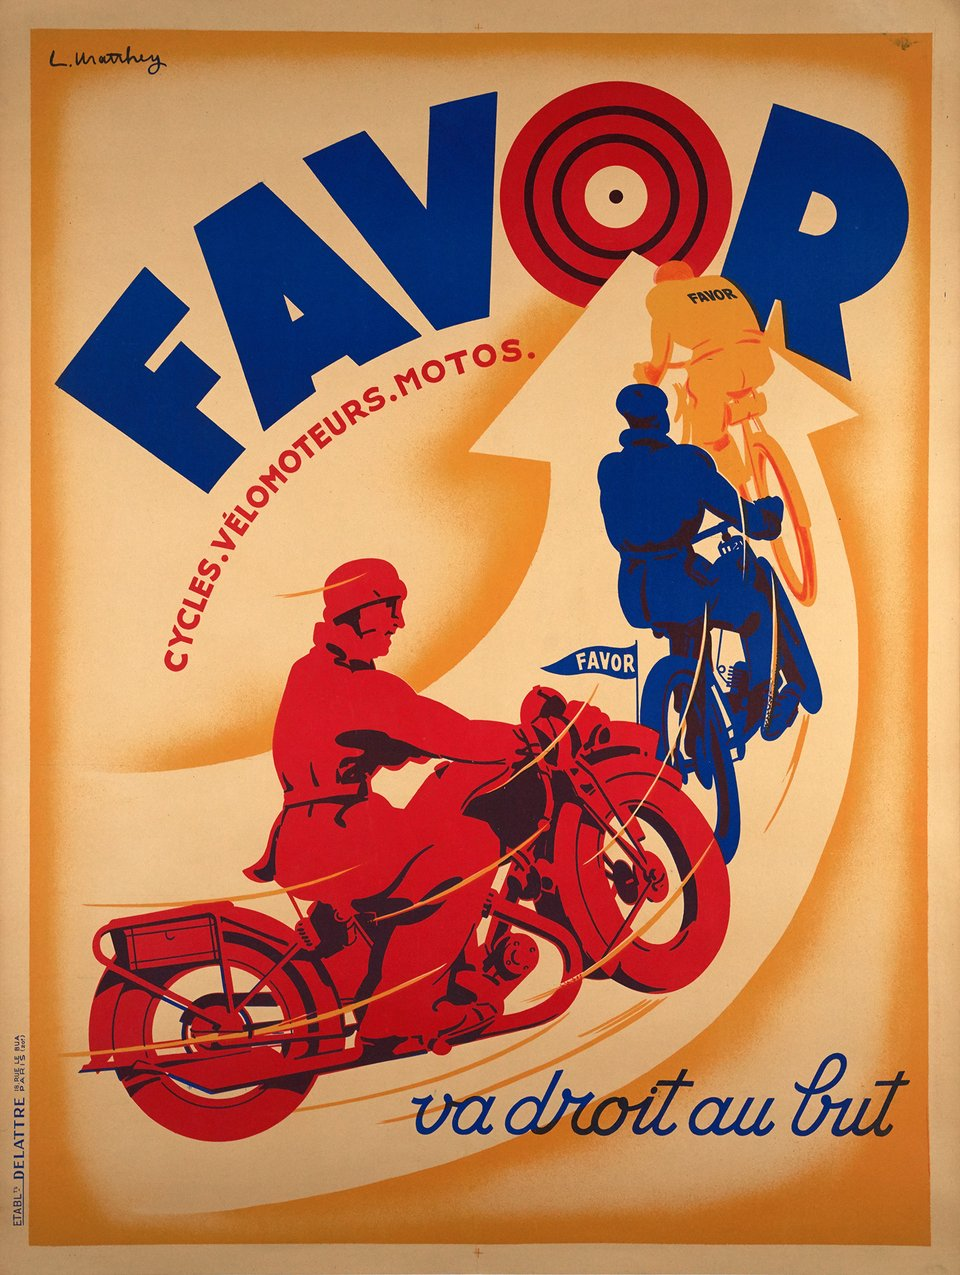 Favor va droit au but, cycles - vélomoteurs - motos – Vintage poster – L MATTHEY – 1920